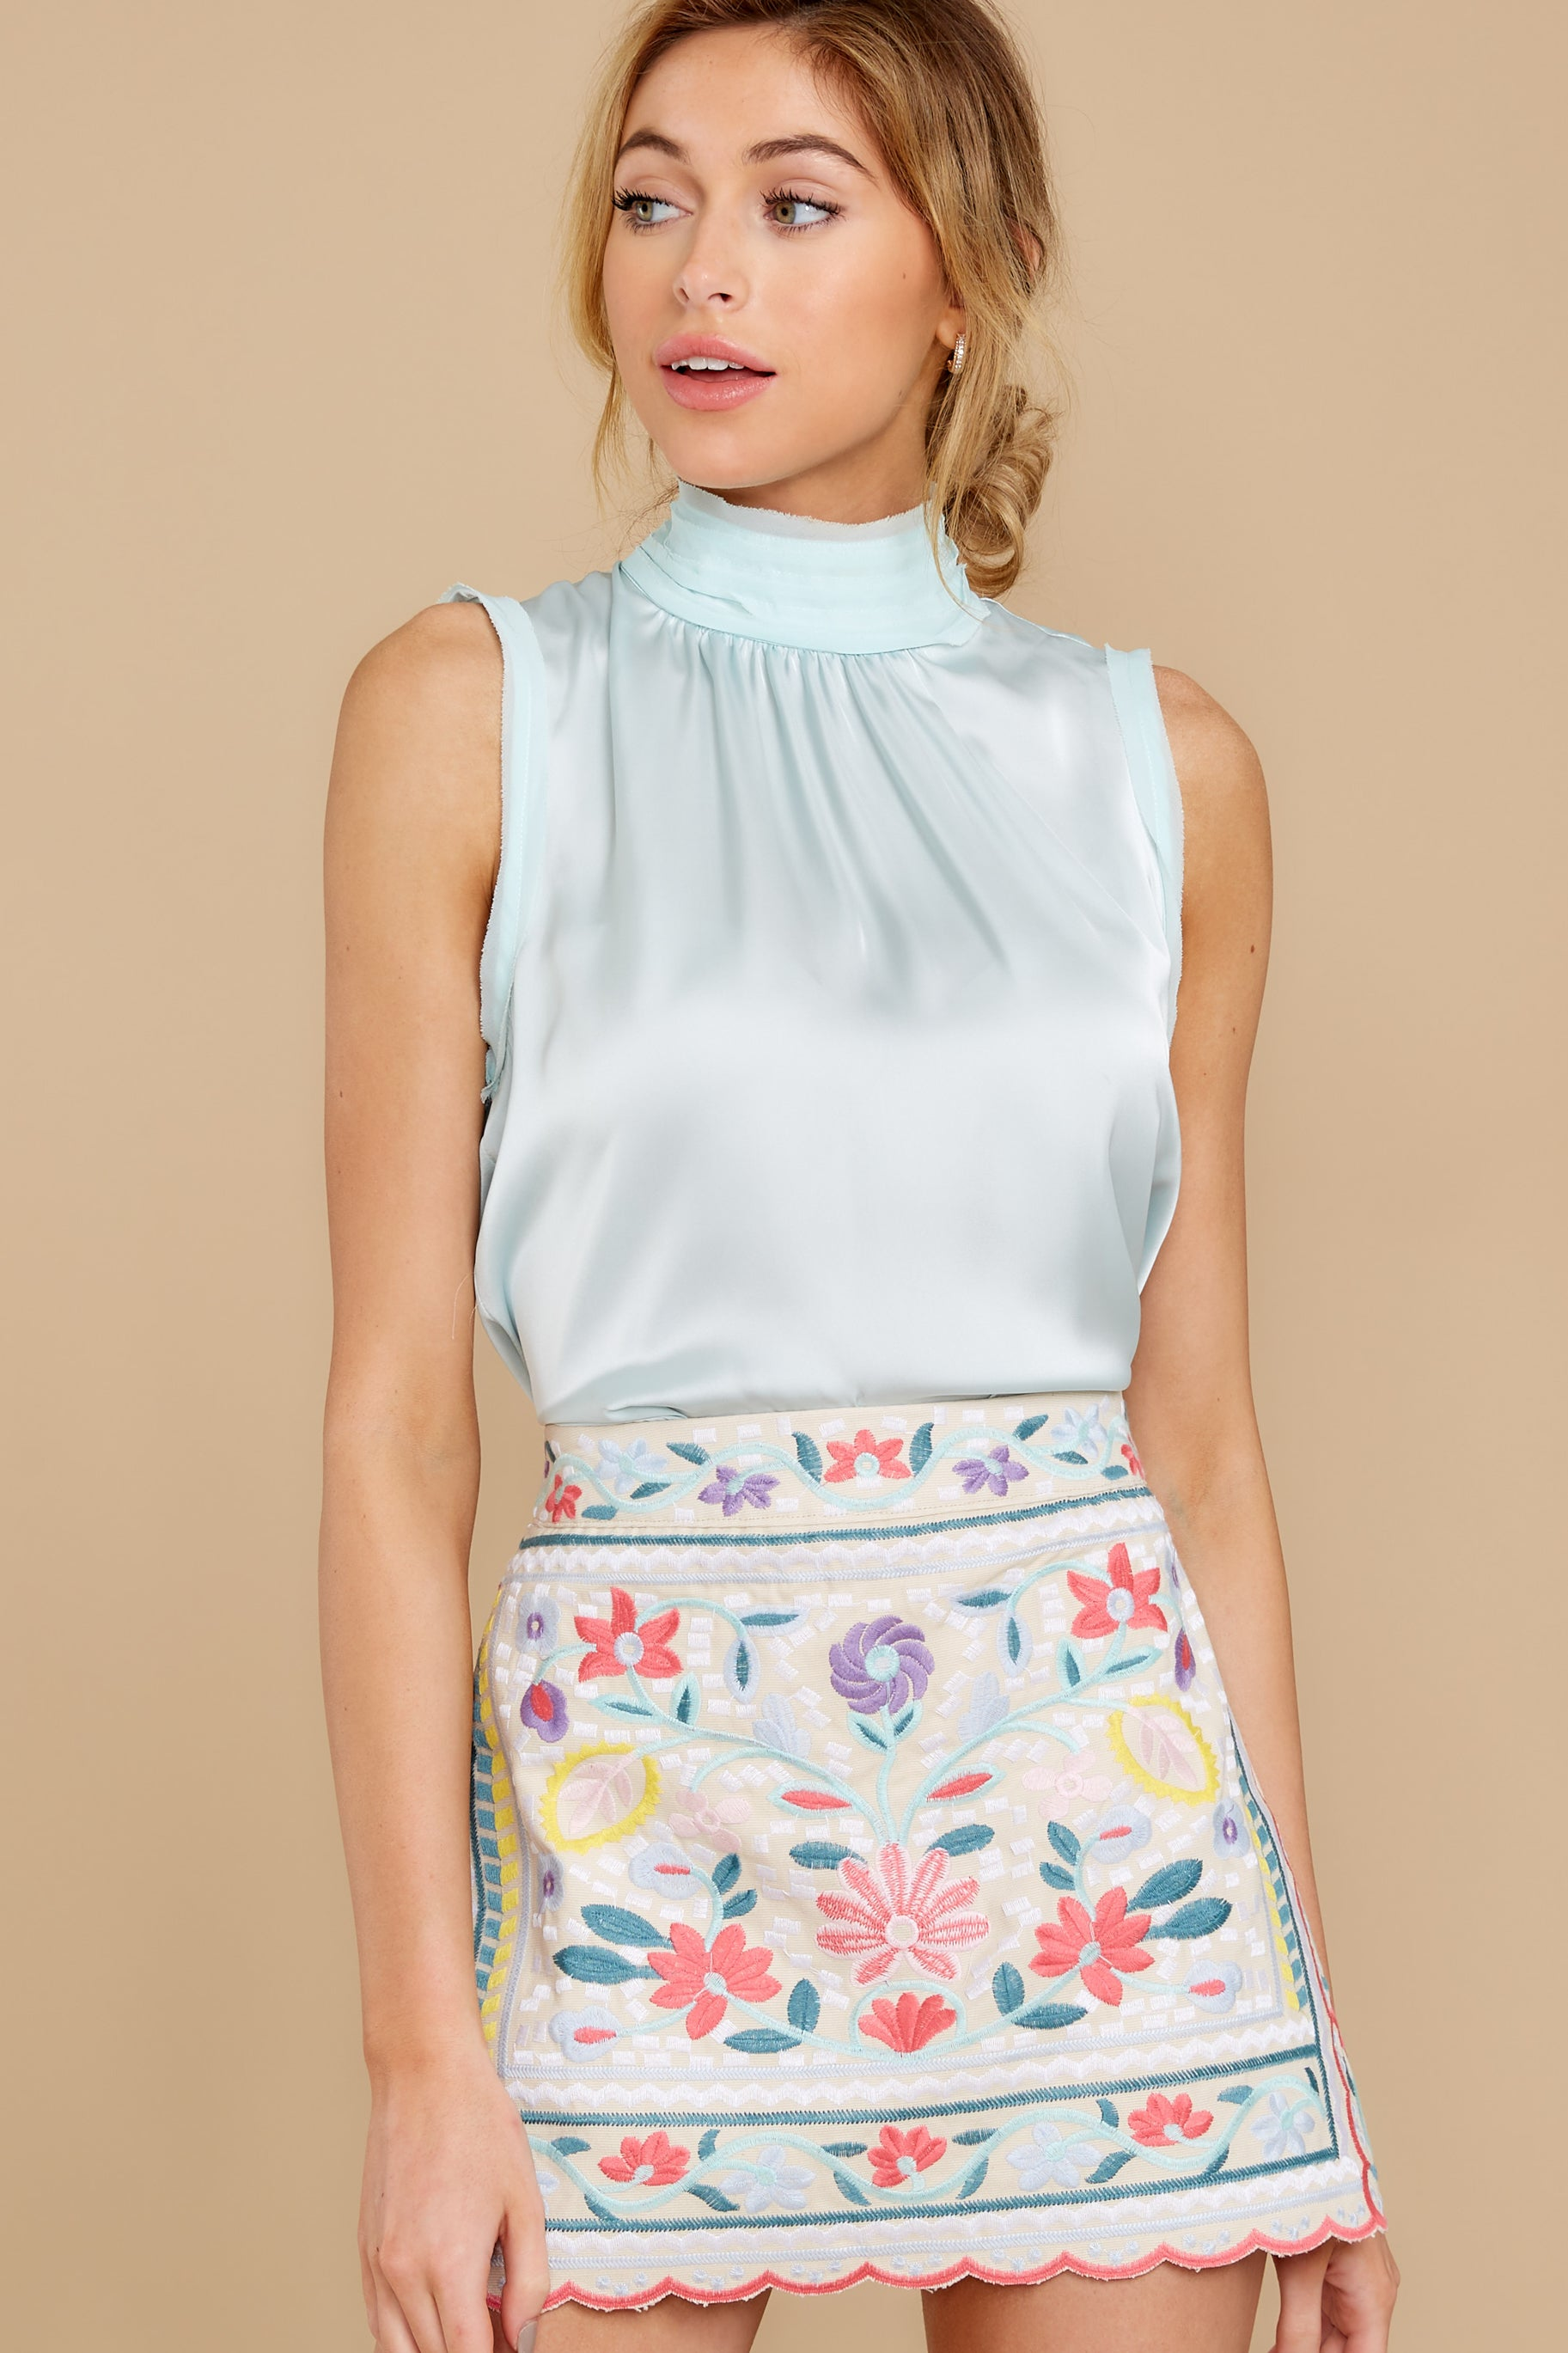 7 The Rational Choice White Embroidered Floral Skirt at reddress.com